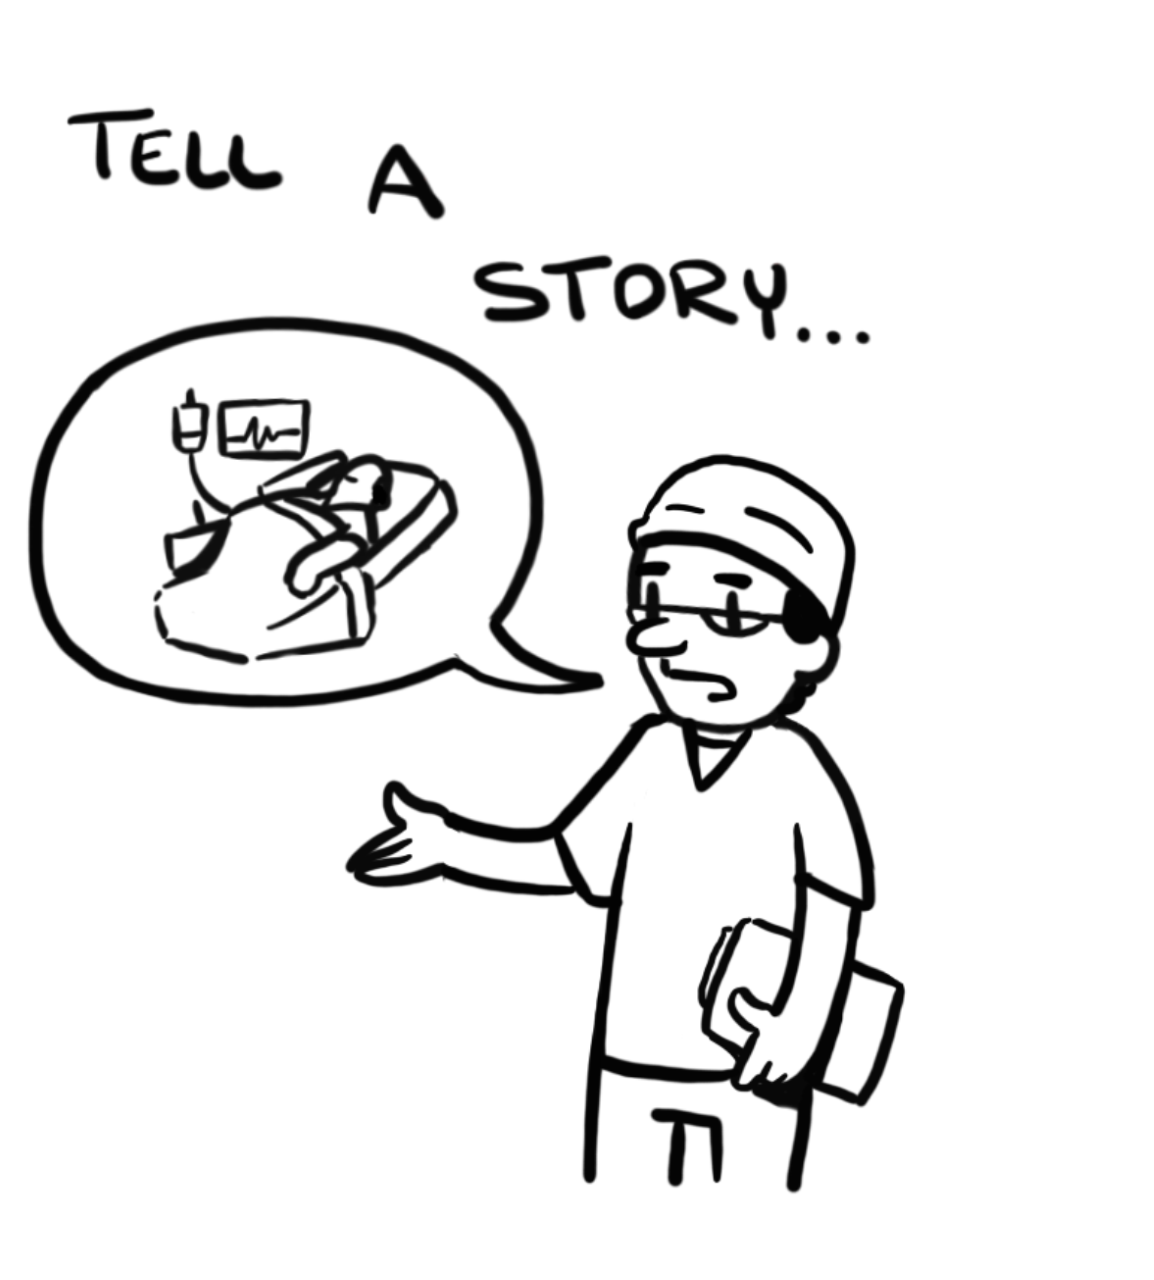 Tell a story.png